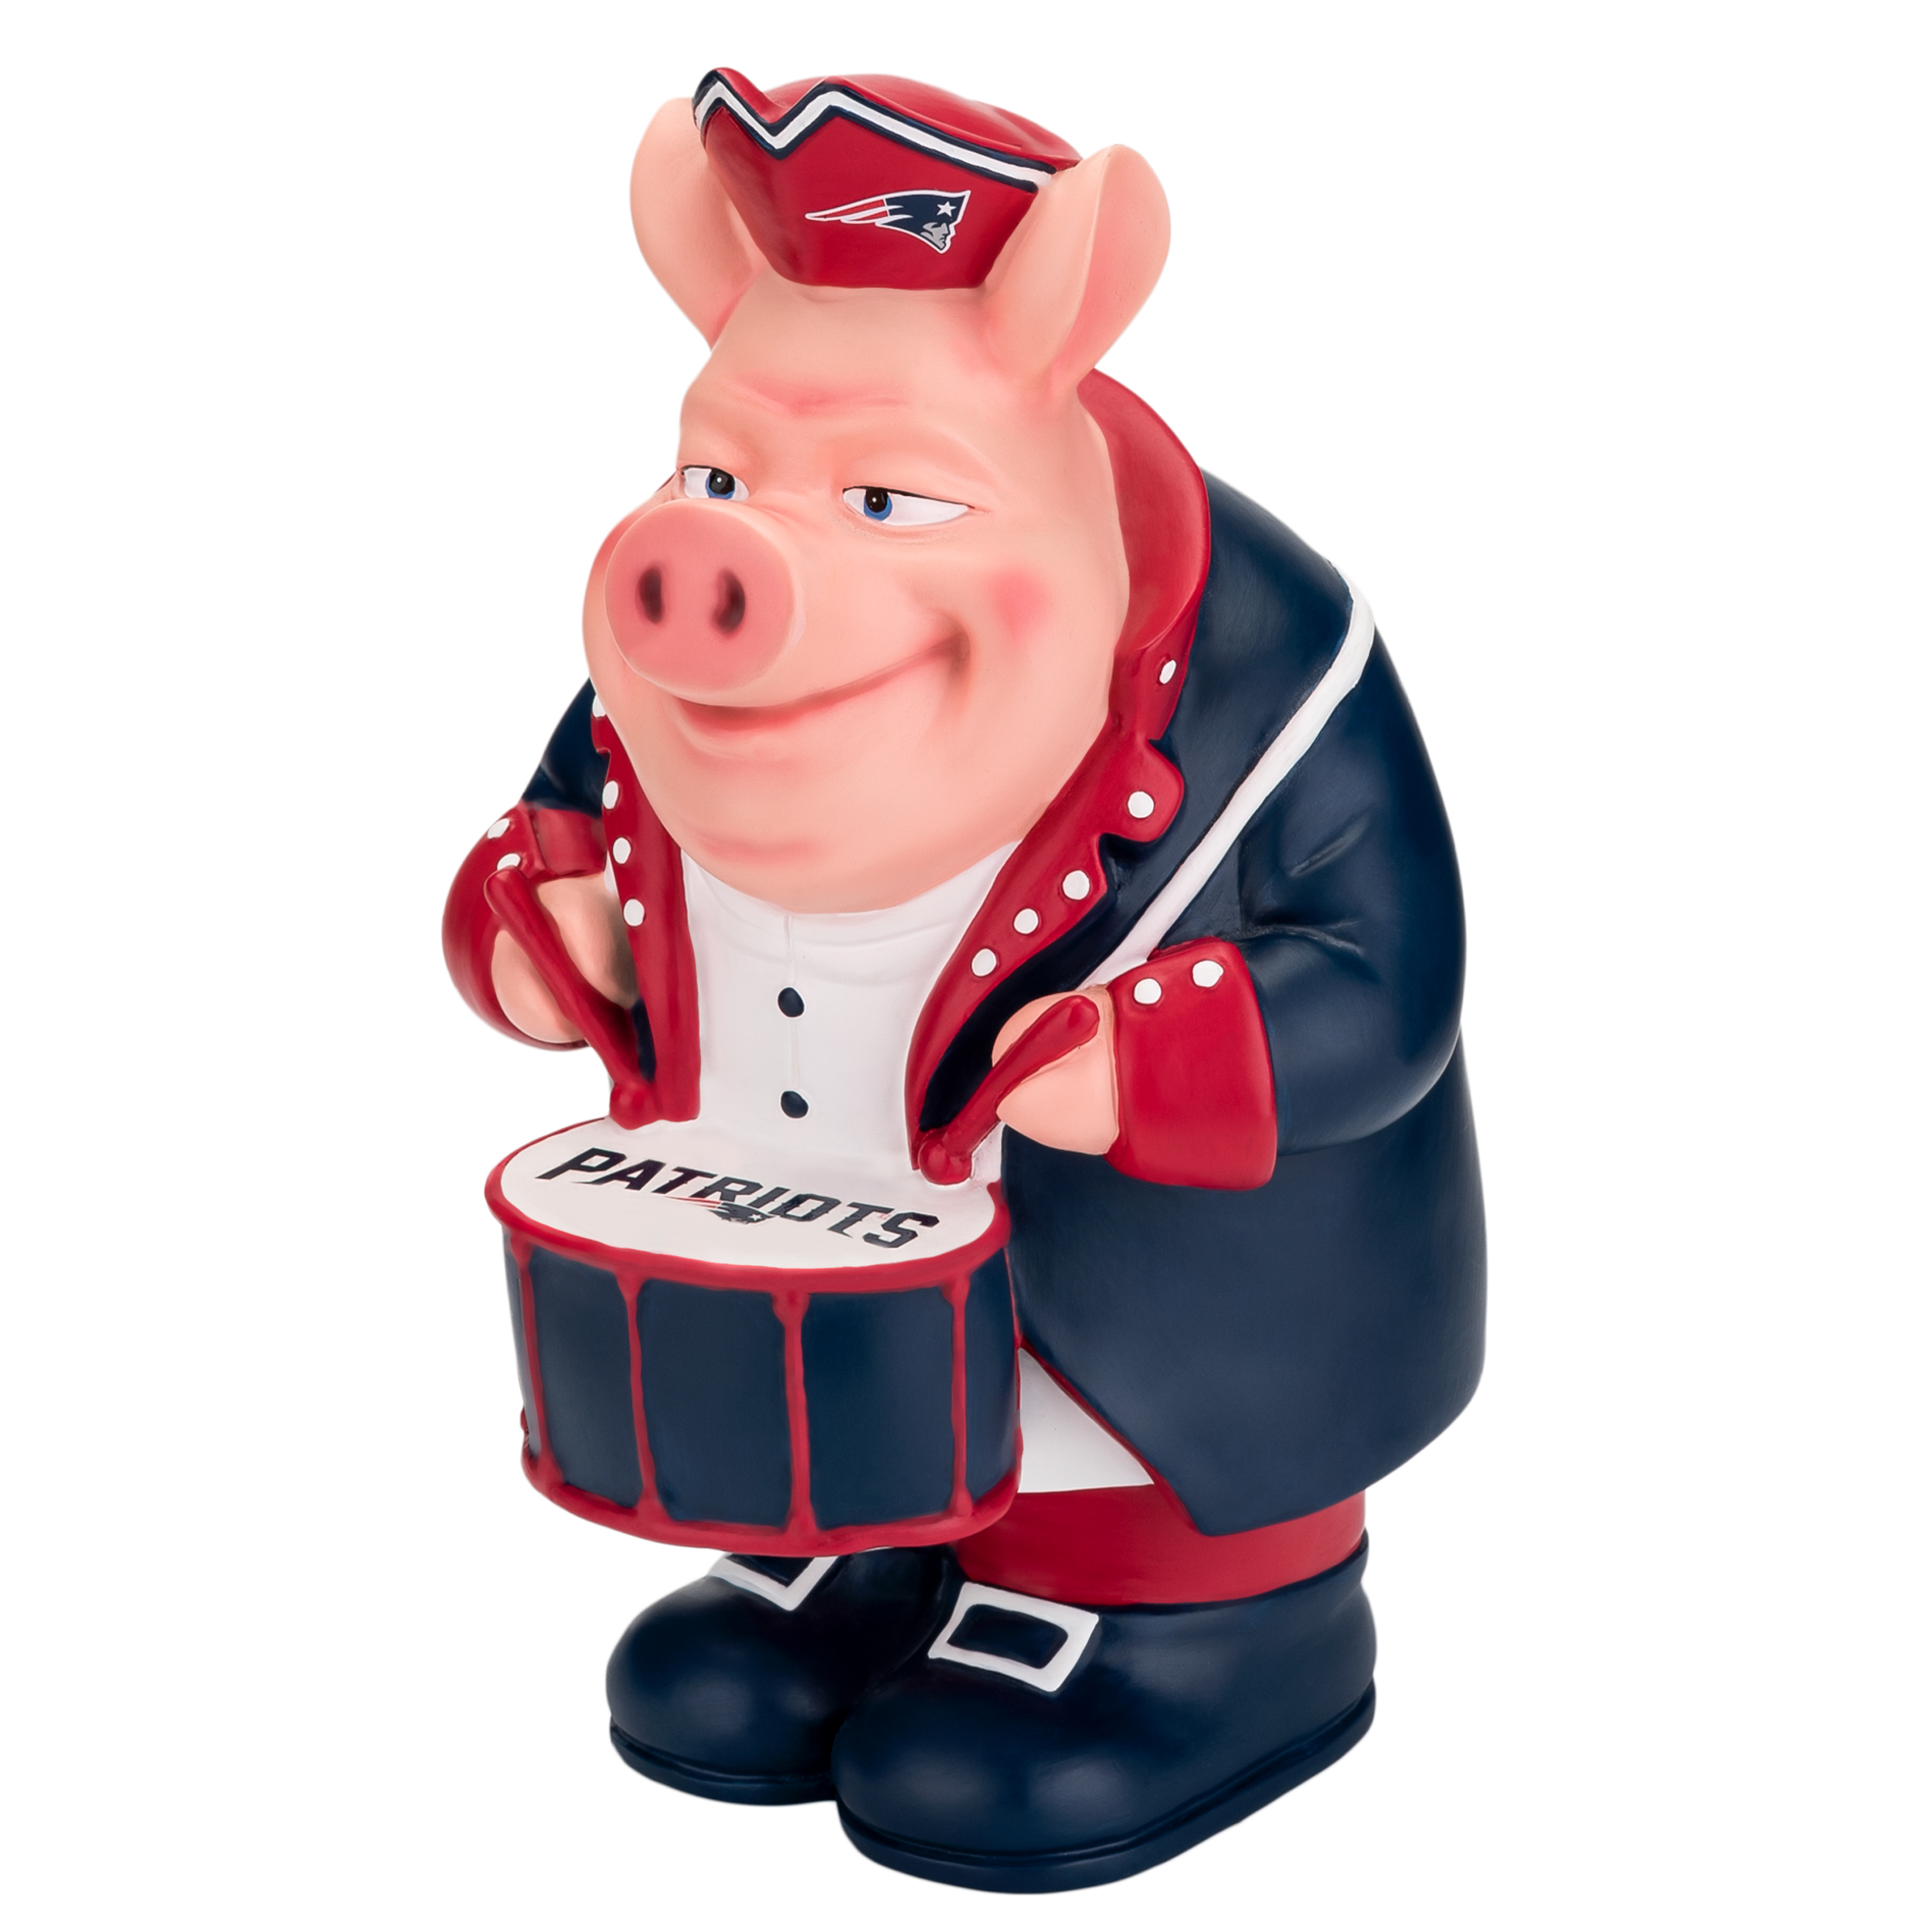 New England Patriots Caricature Piggy Bank by Forever Collectibles